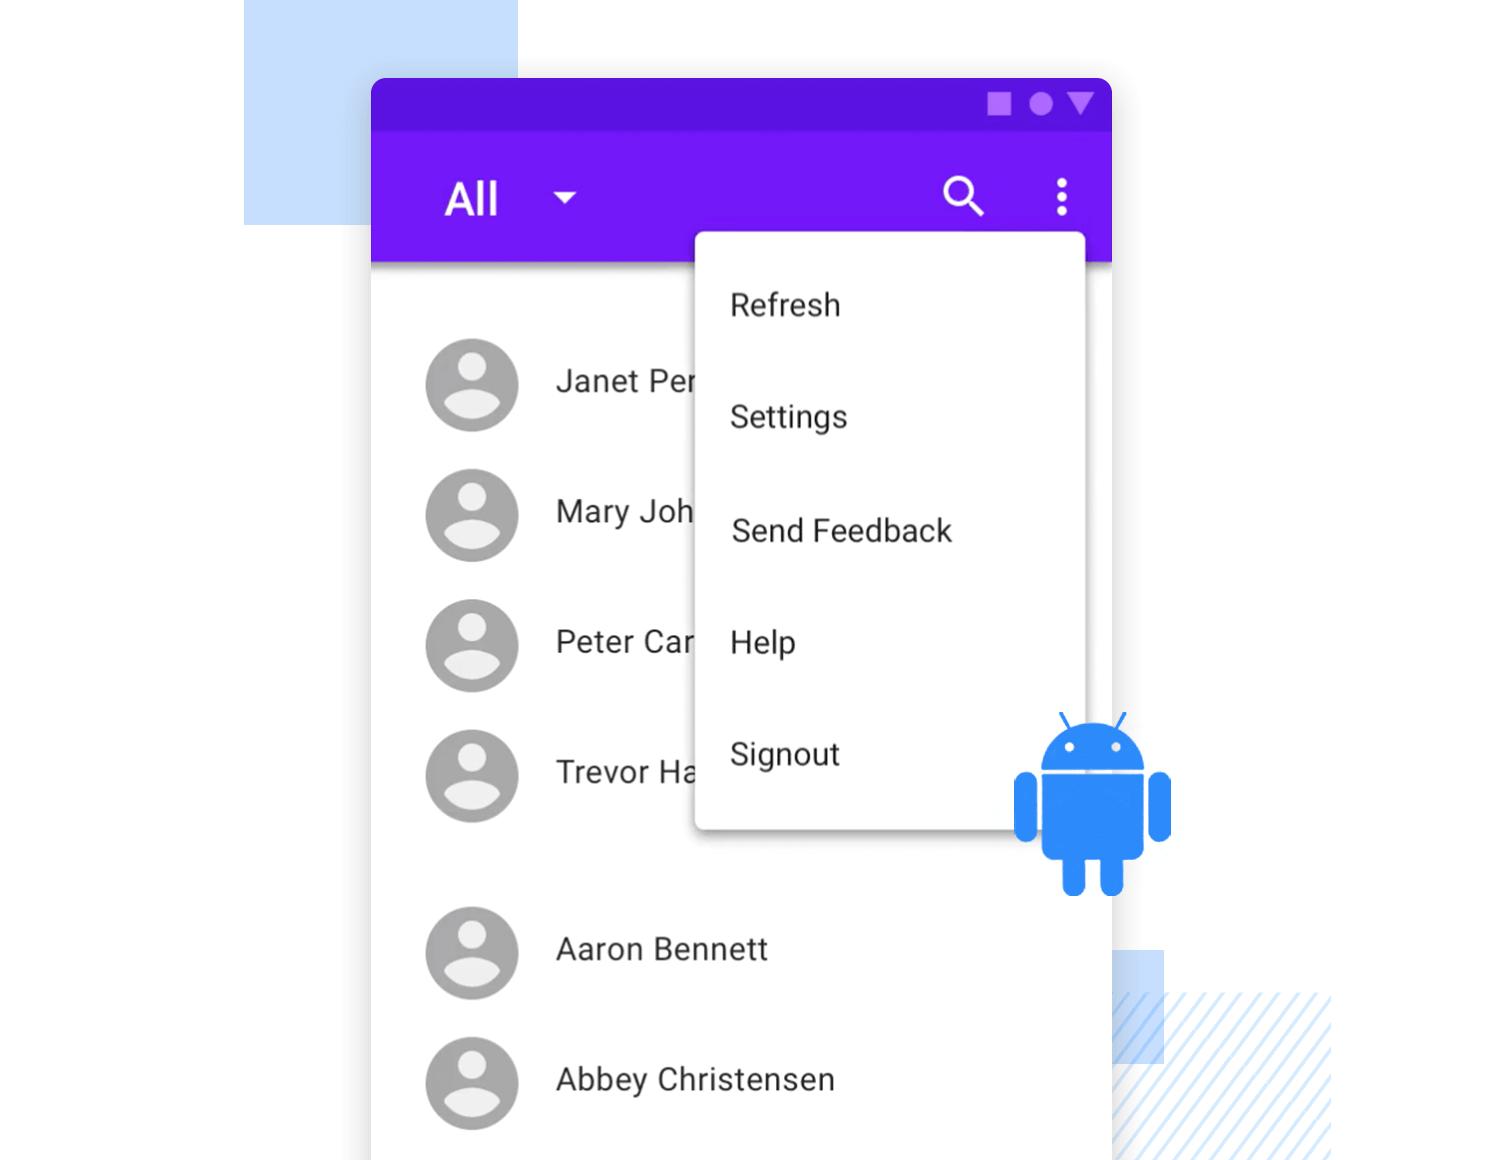 Drop down list design - Android Material Design